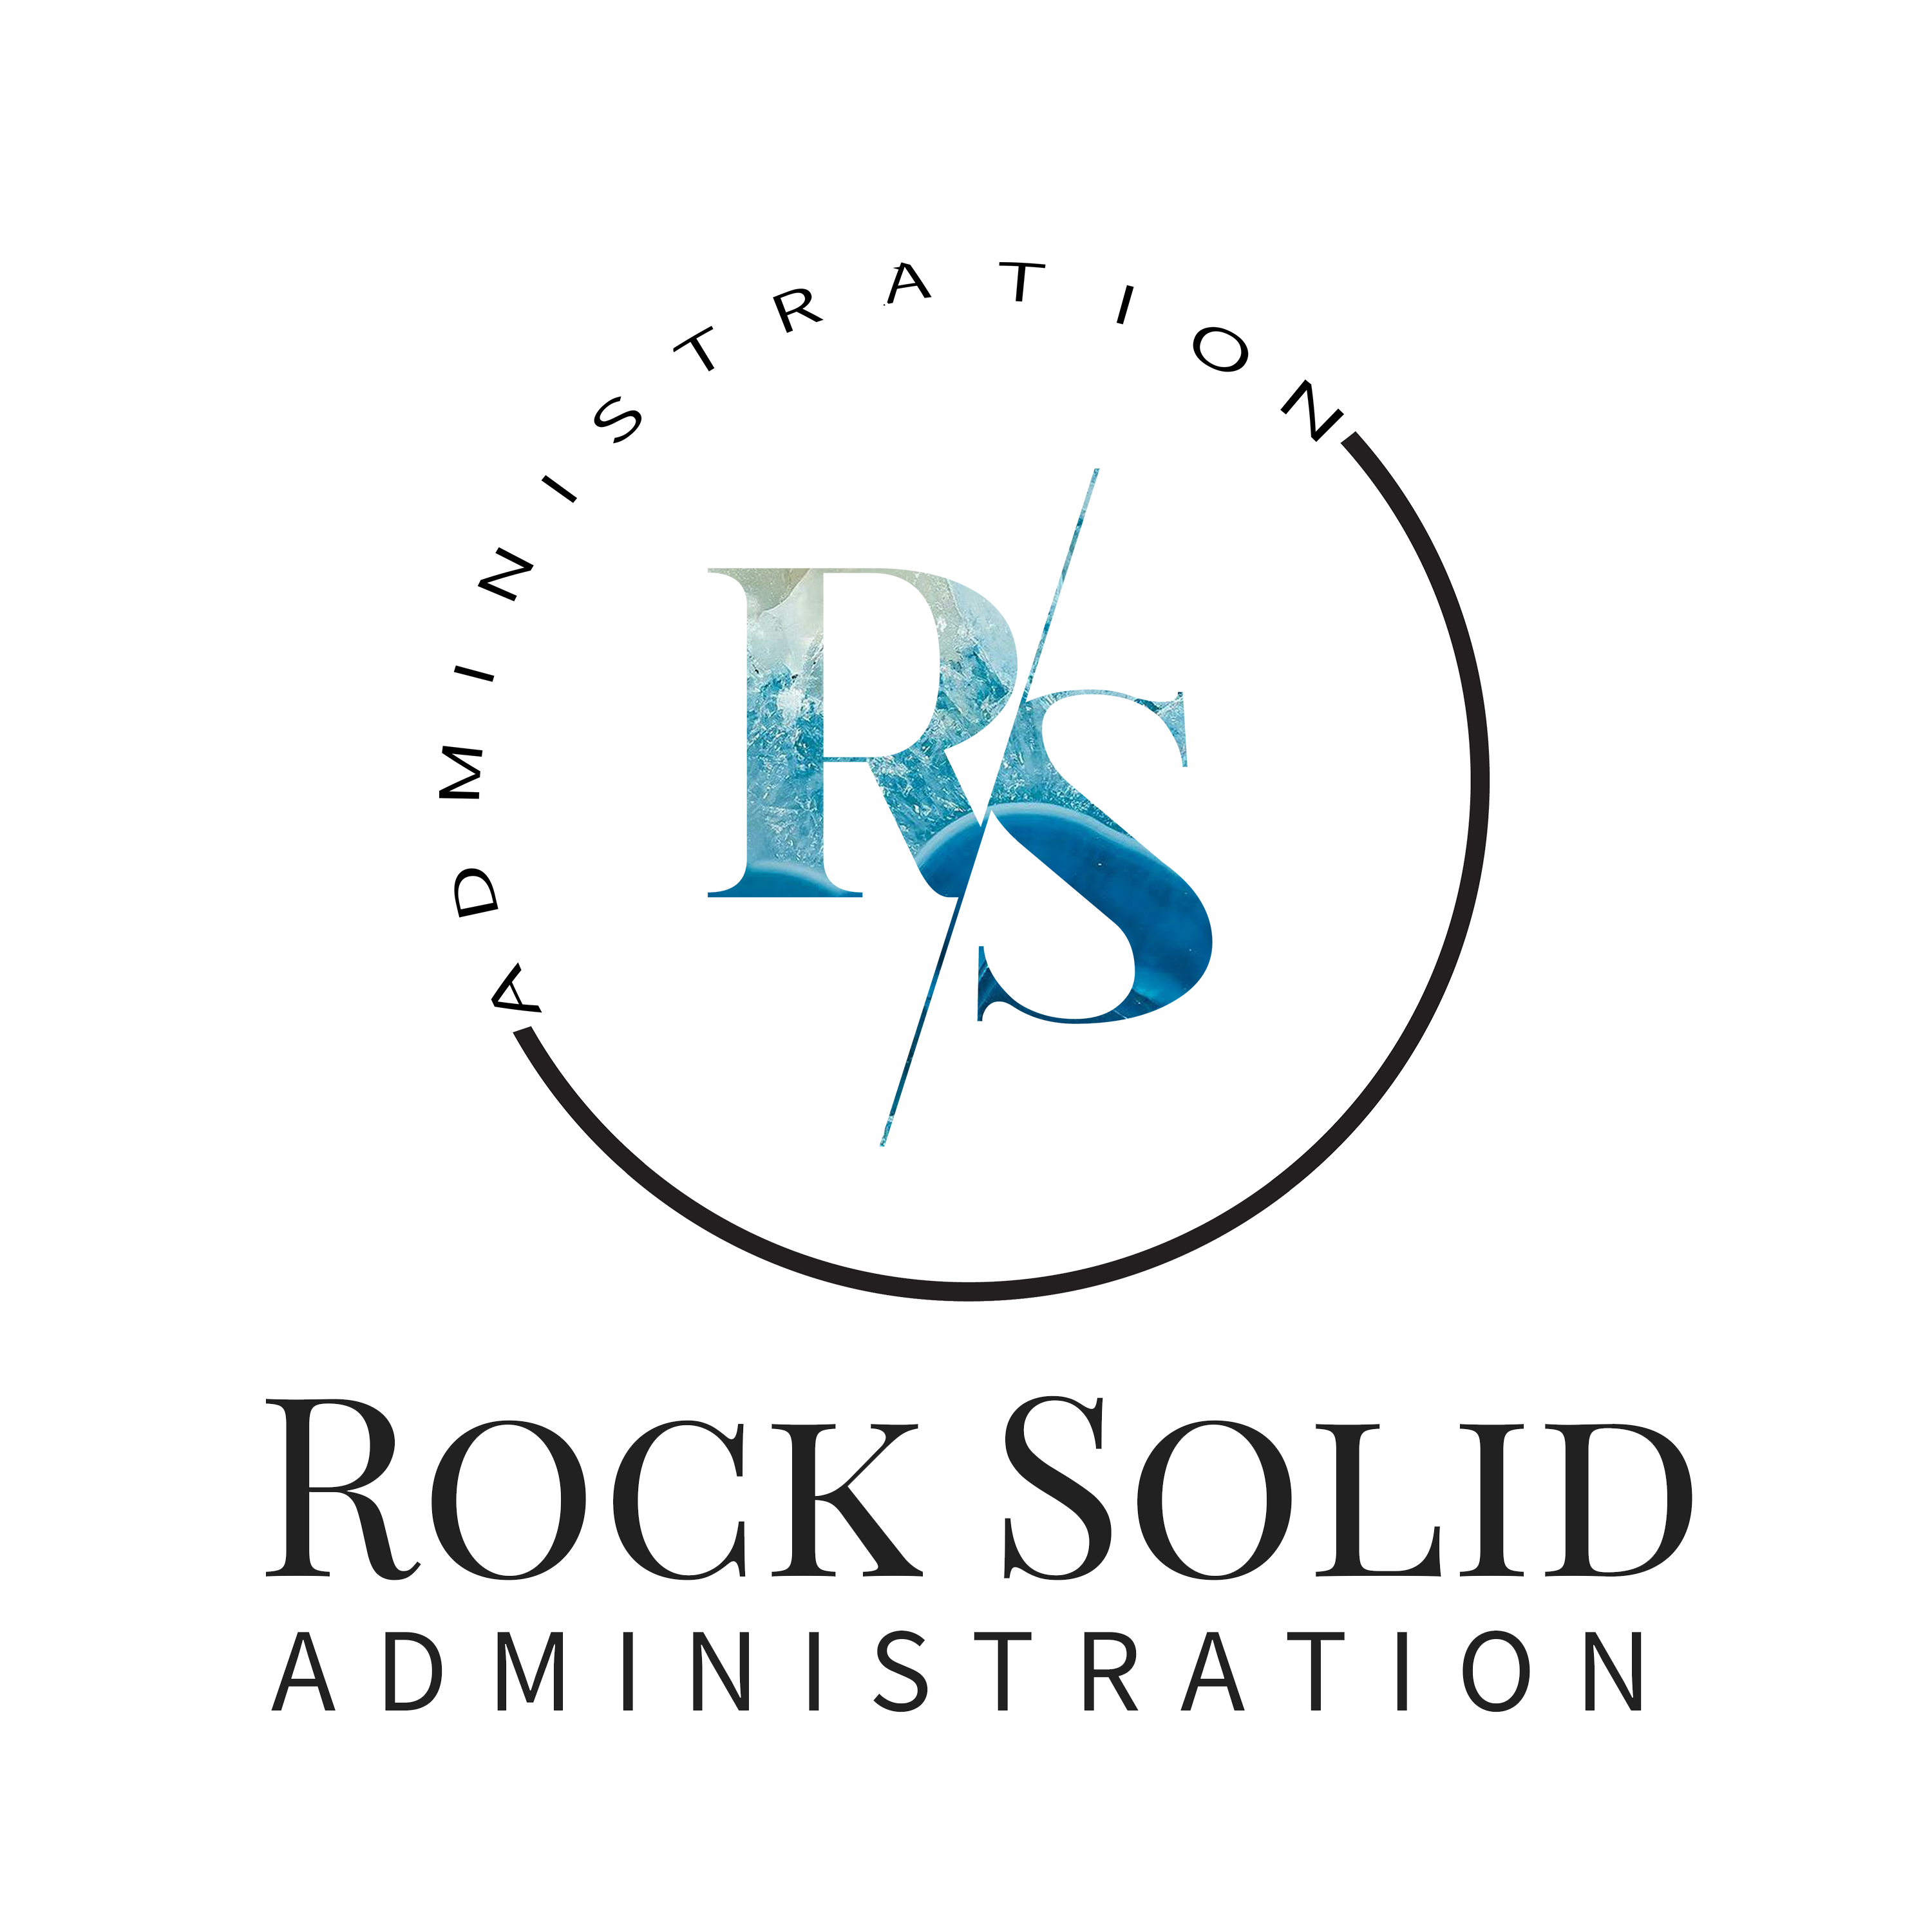 Rock Solid Administration Inc.